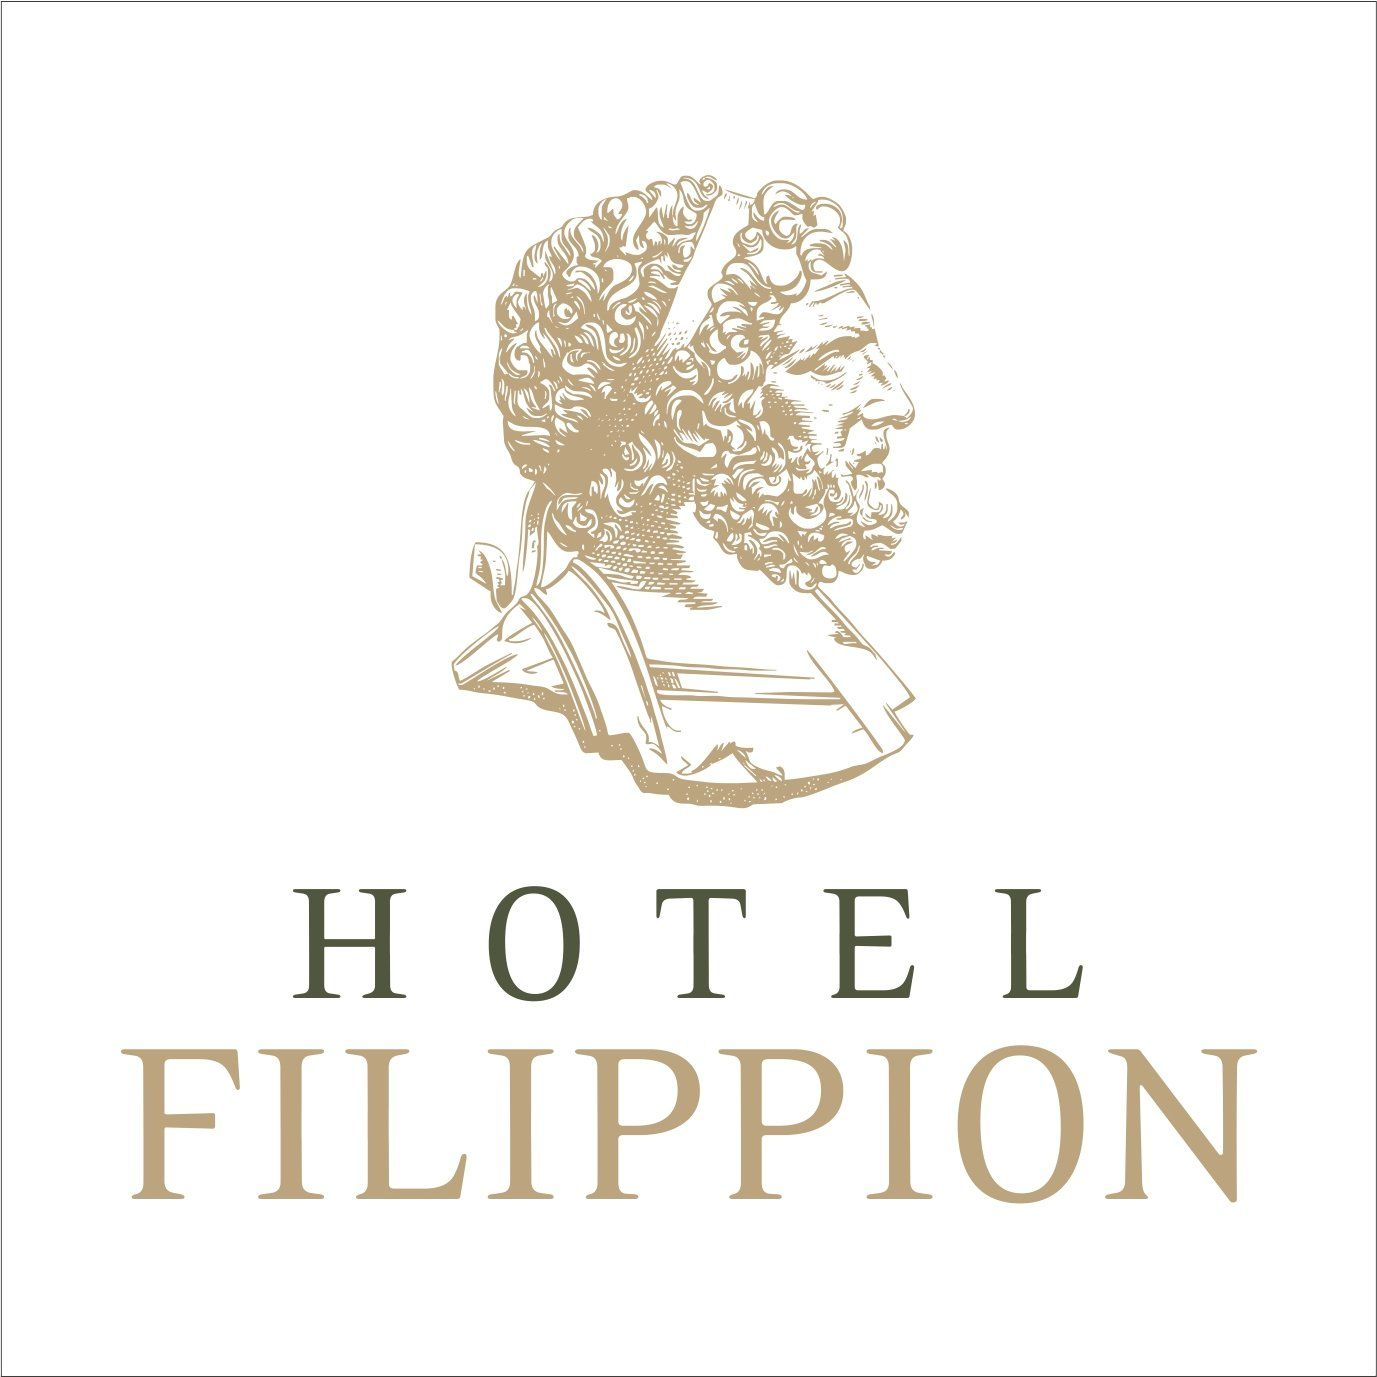 Filippion Hotel